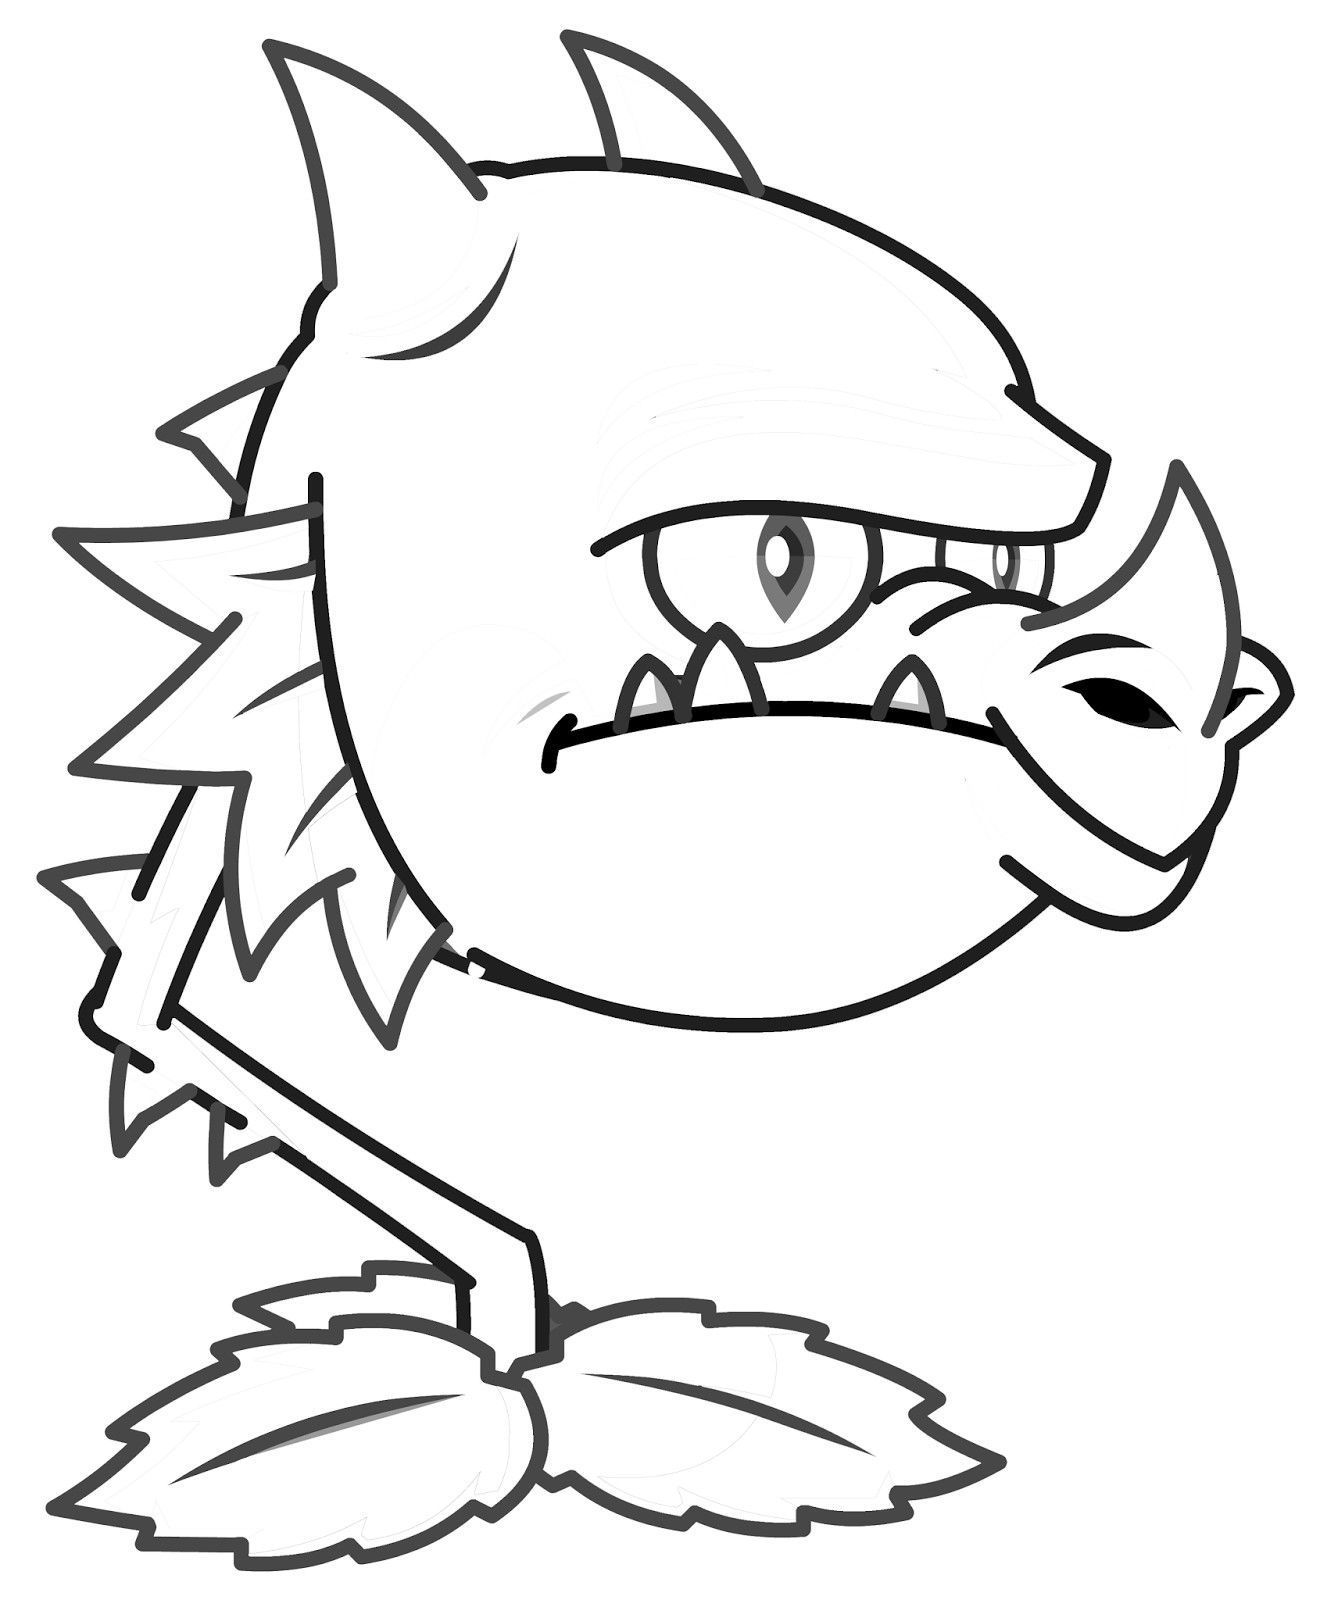 disney channel zombies coloring pages paint bucket coloring pages and pixel art 2017 disney zombies pages coloring channel